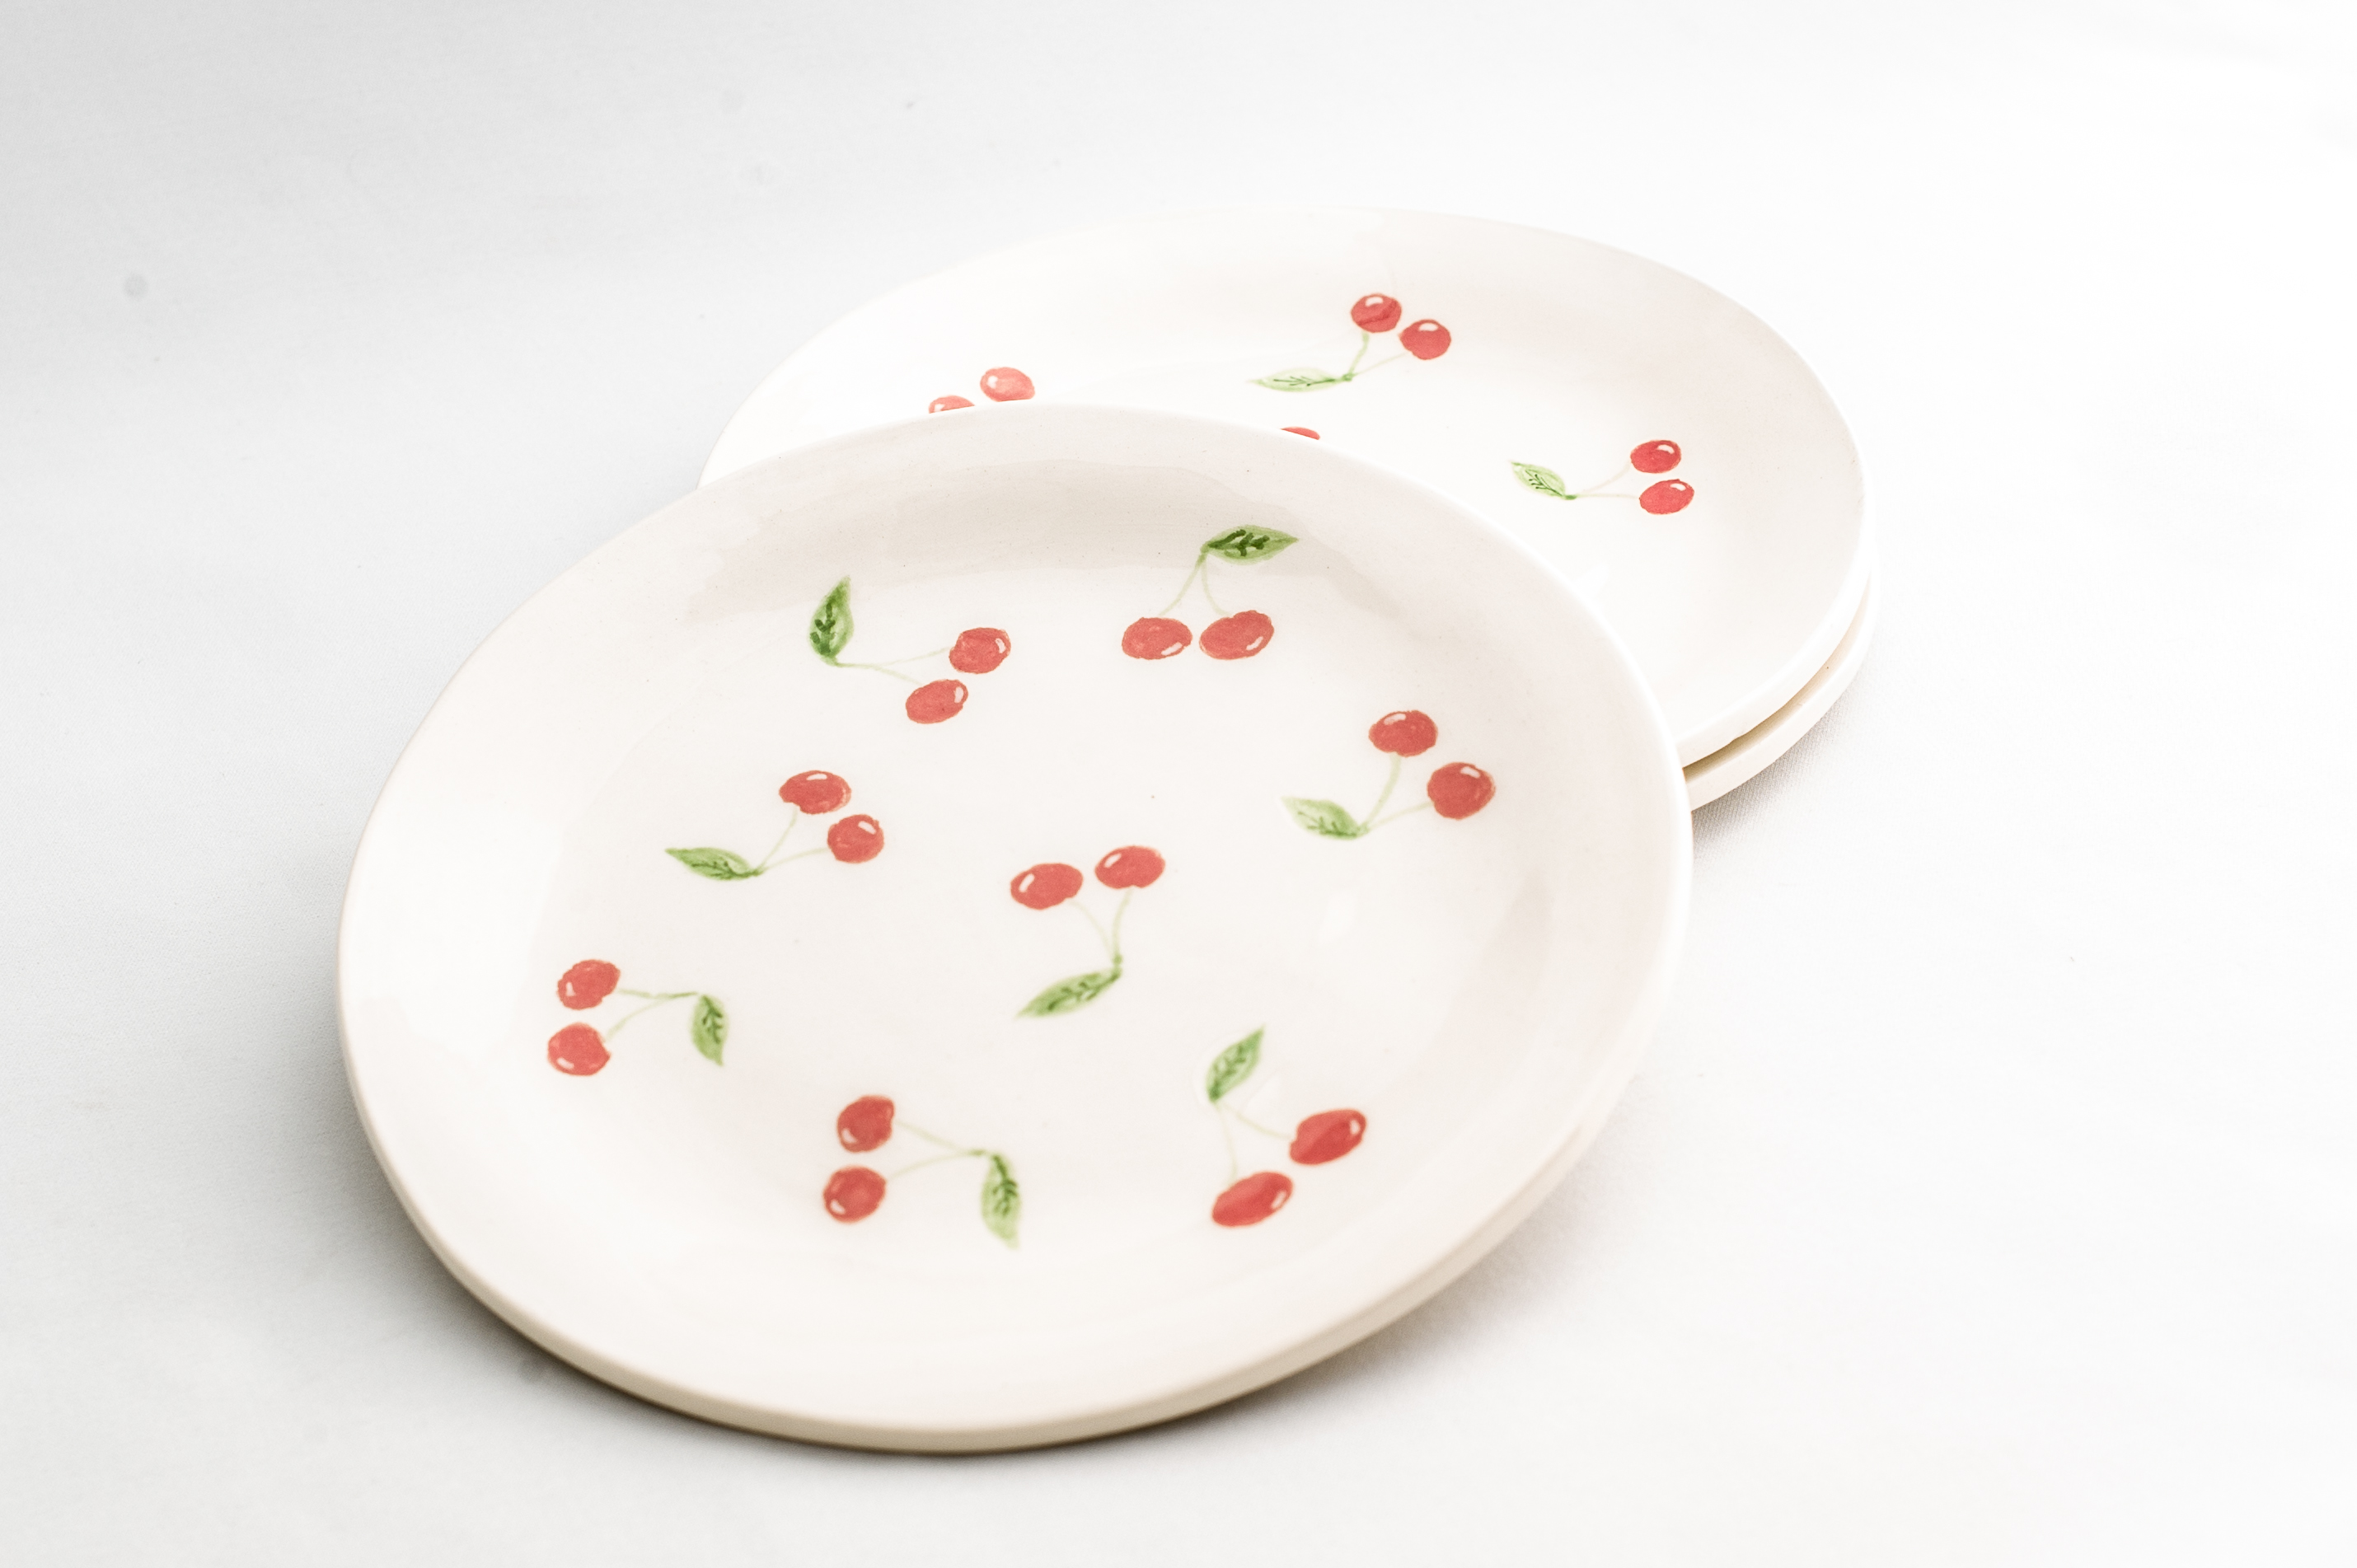 assiettes (1 of 1)